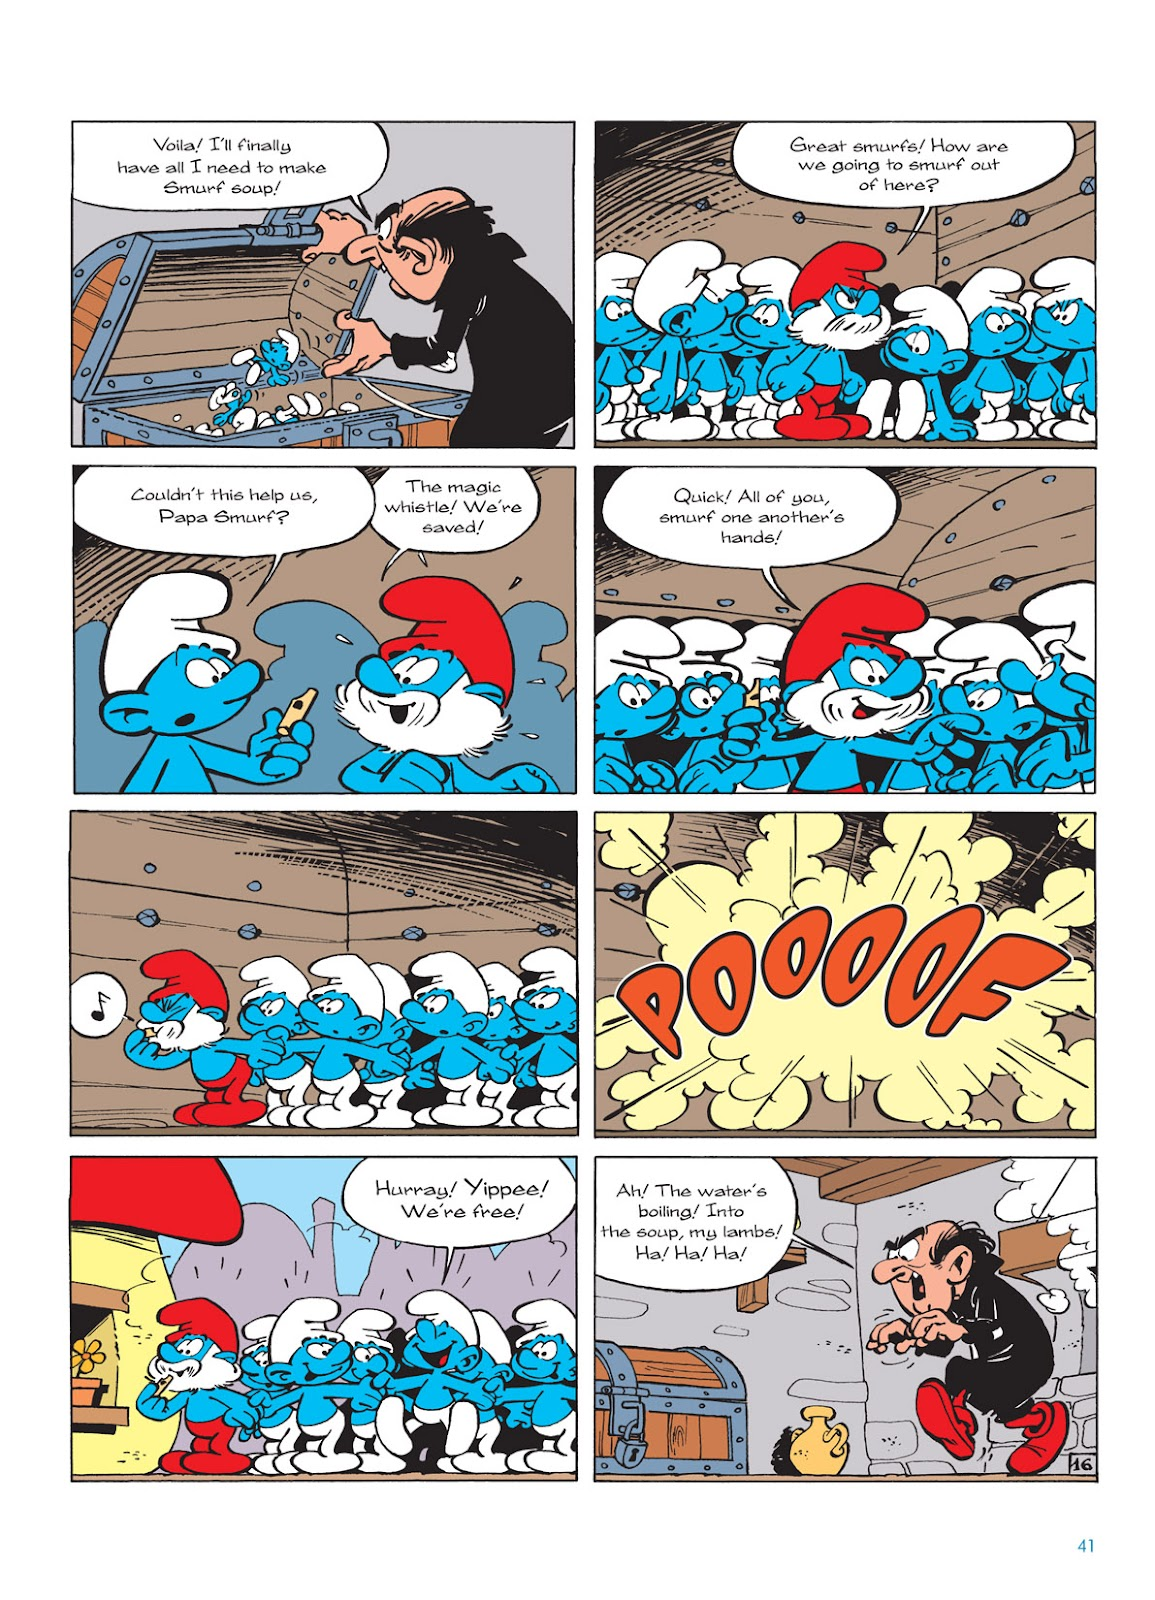 Read online The Smurfs comic -  Issue #9 - 41